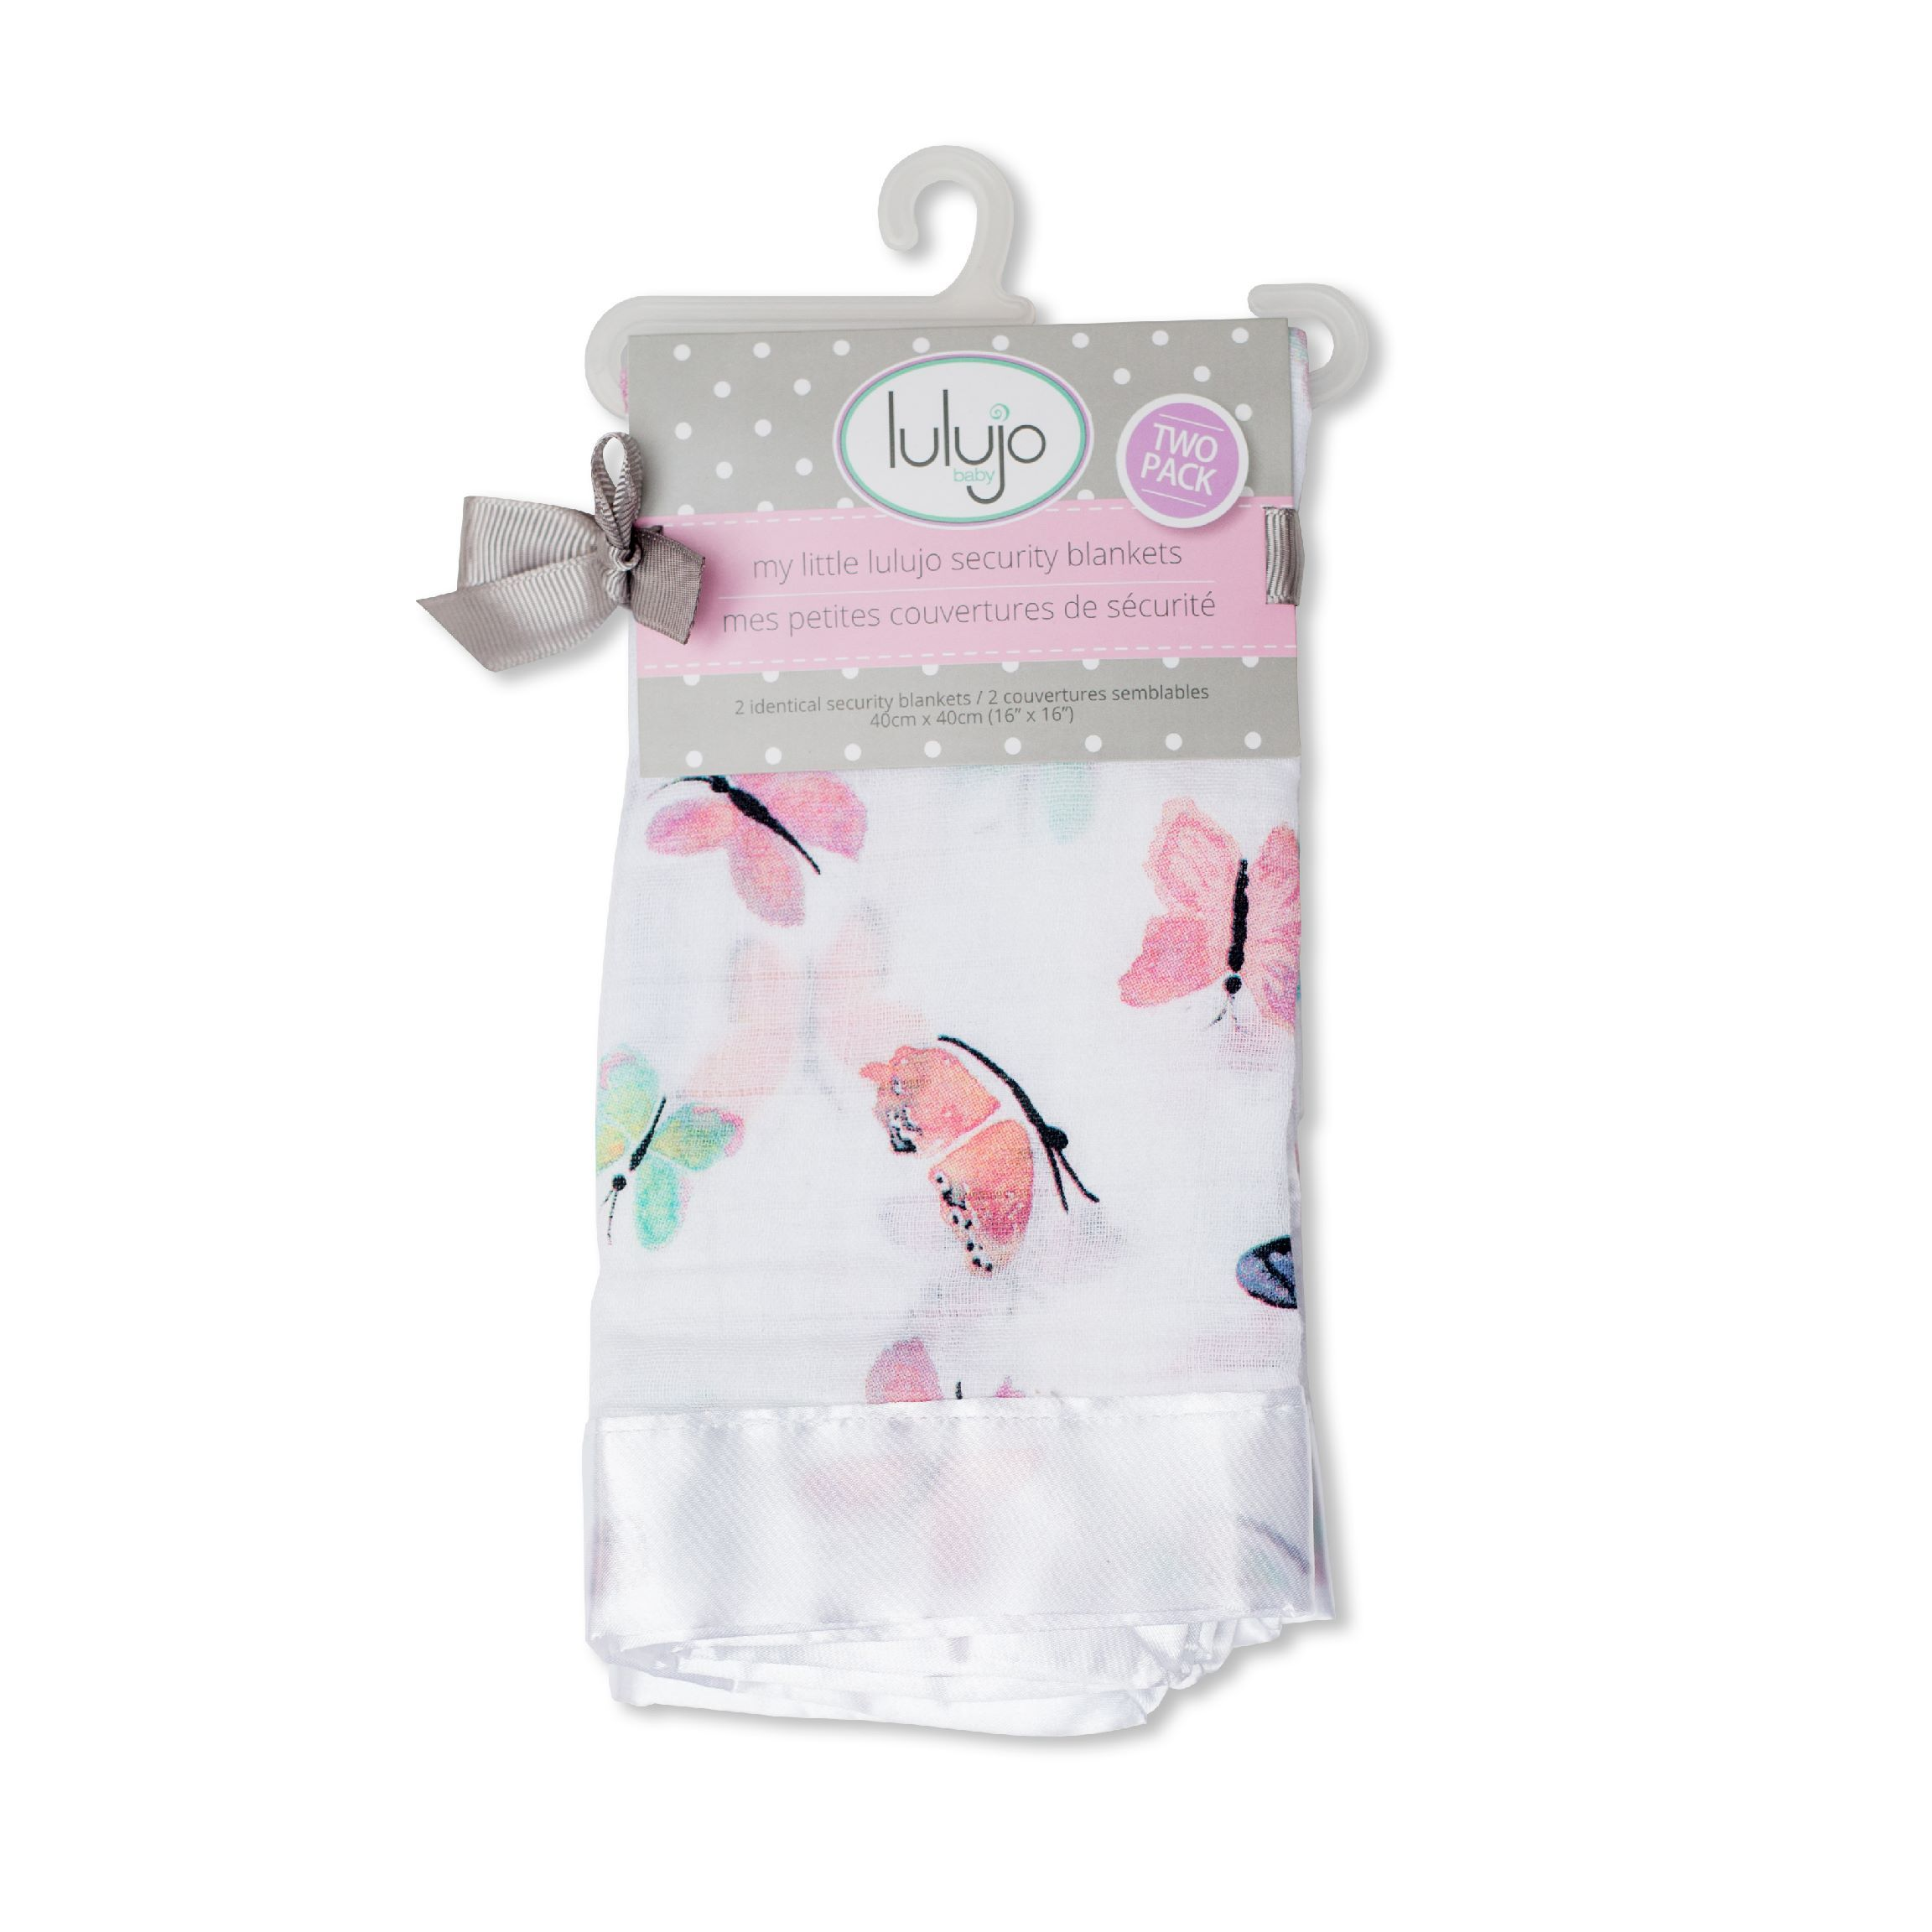 LuLuJo Baby Security Blanket Comforters with Silk Trim - 2 Pack - Butterfly